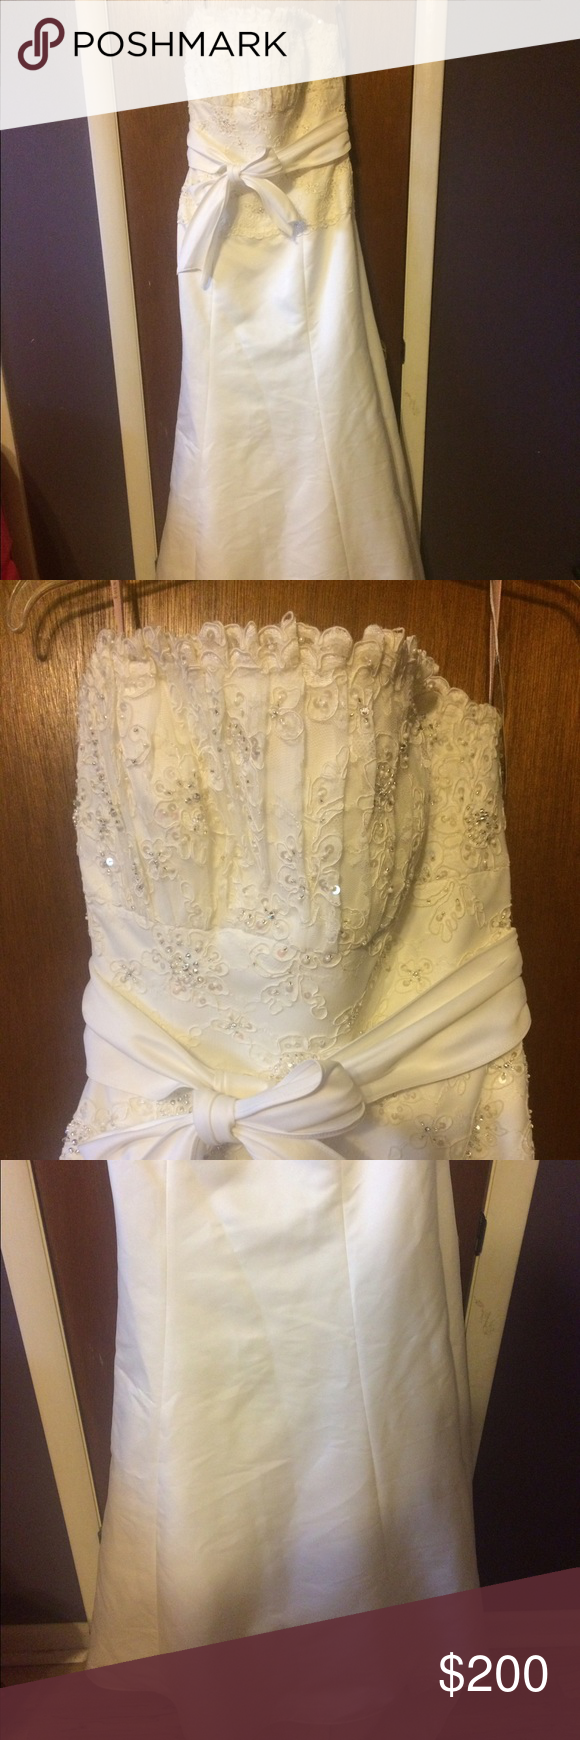 NWT ivory wedding dress NWT strapless ivory wedding dress. Beading on bodice. Sash at waist. Dresses Wedding